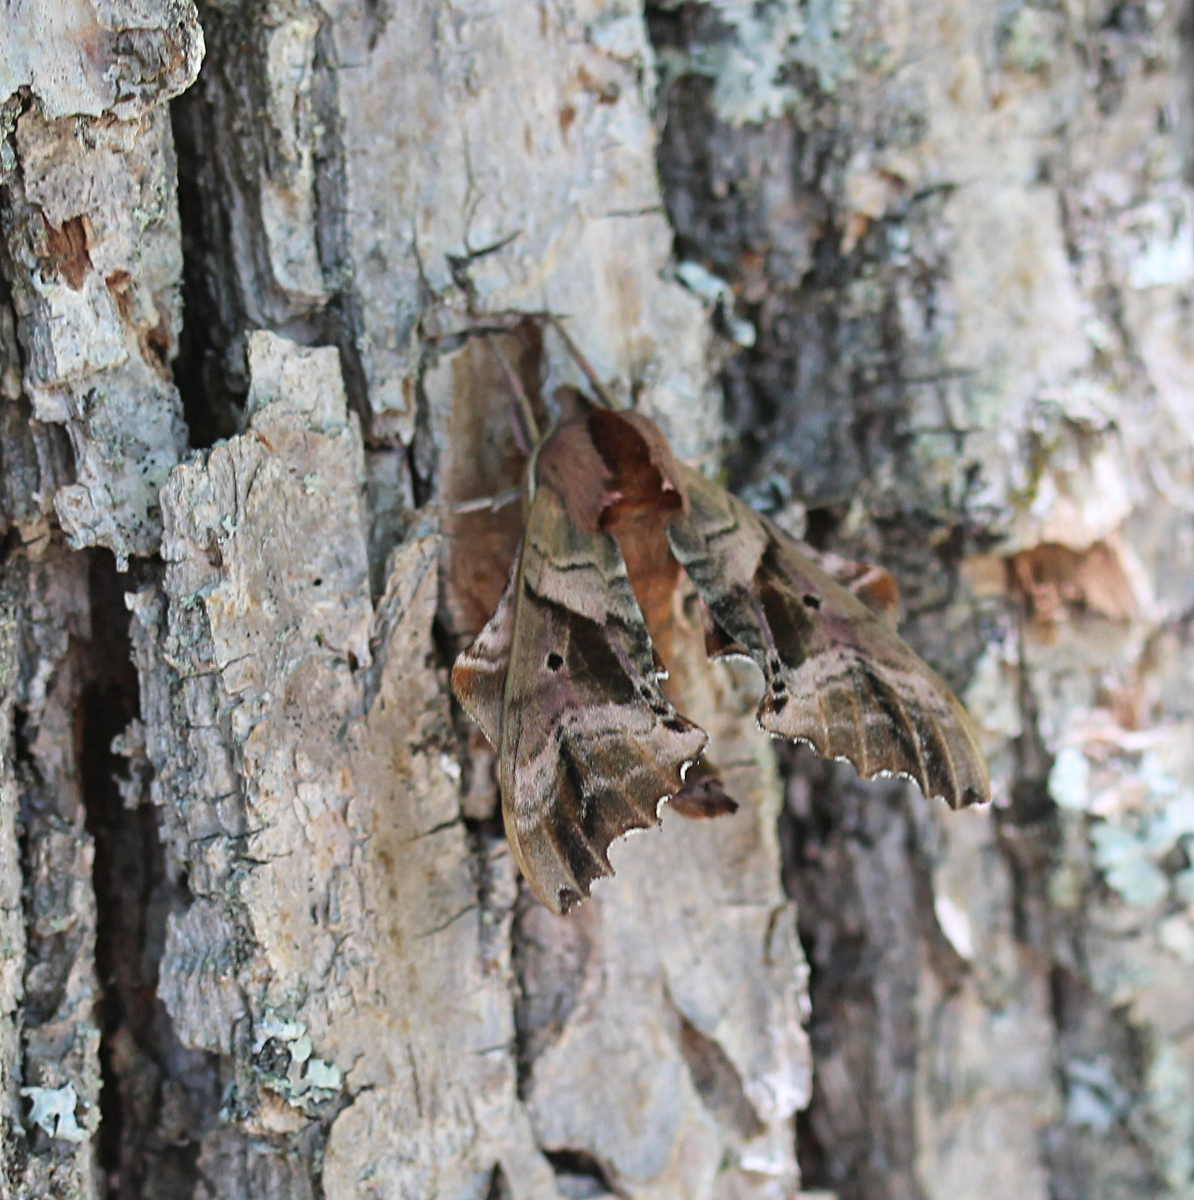 large moth camouflaged on tree bark